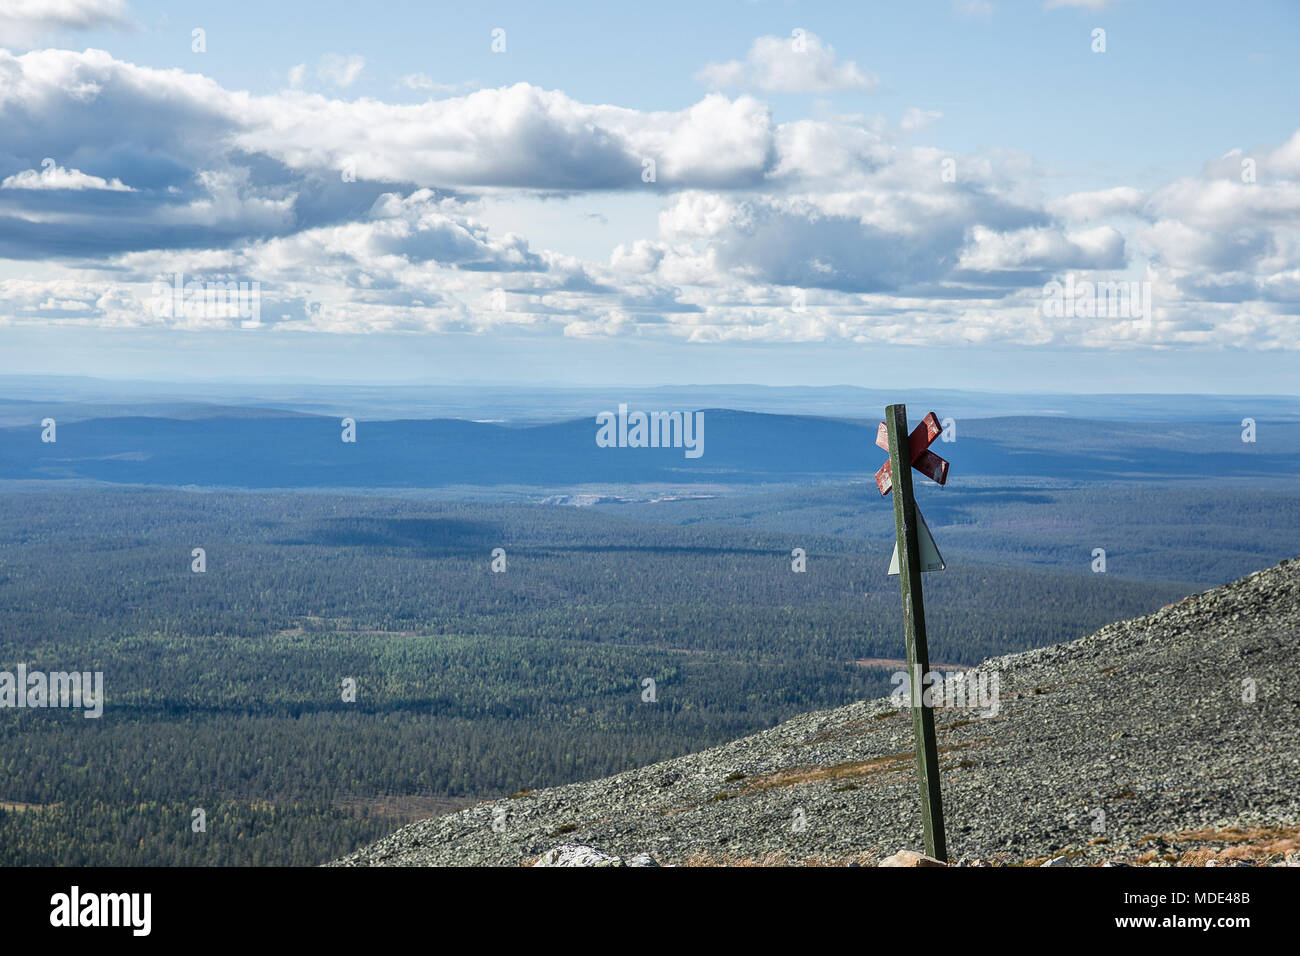 Landscape in Lapland, Finland taken on top of the mountain of Ylläs - Stock Image